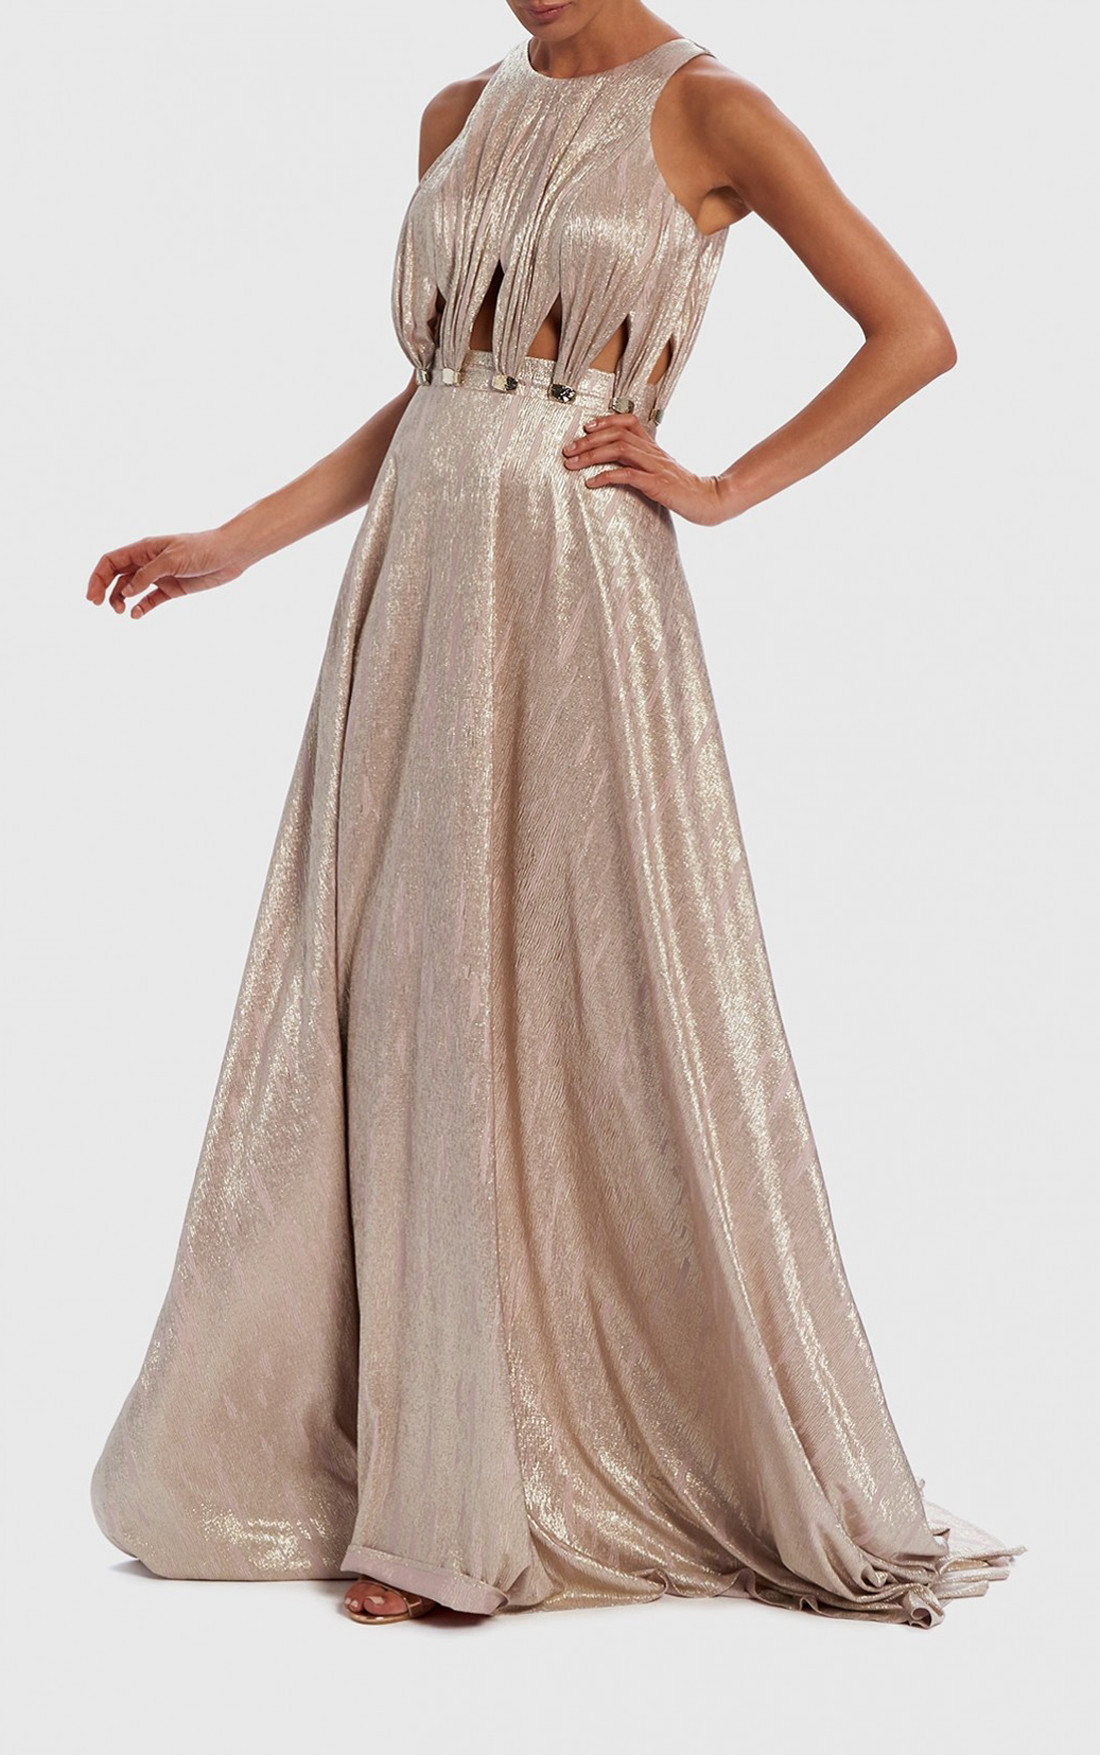 Forever Unique - Jombe Champagne Metallic Cut-Out Evening Dress (AF8902)